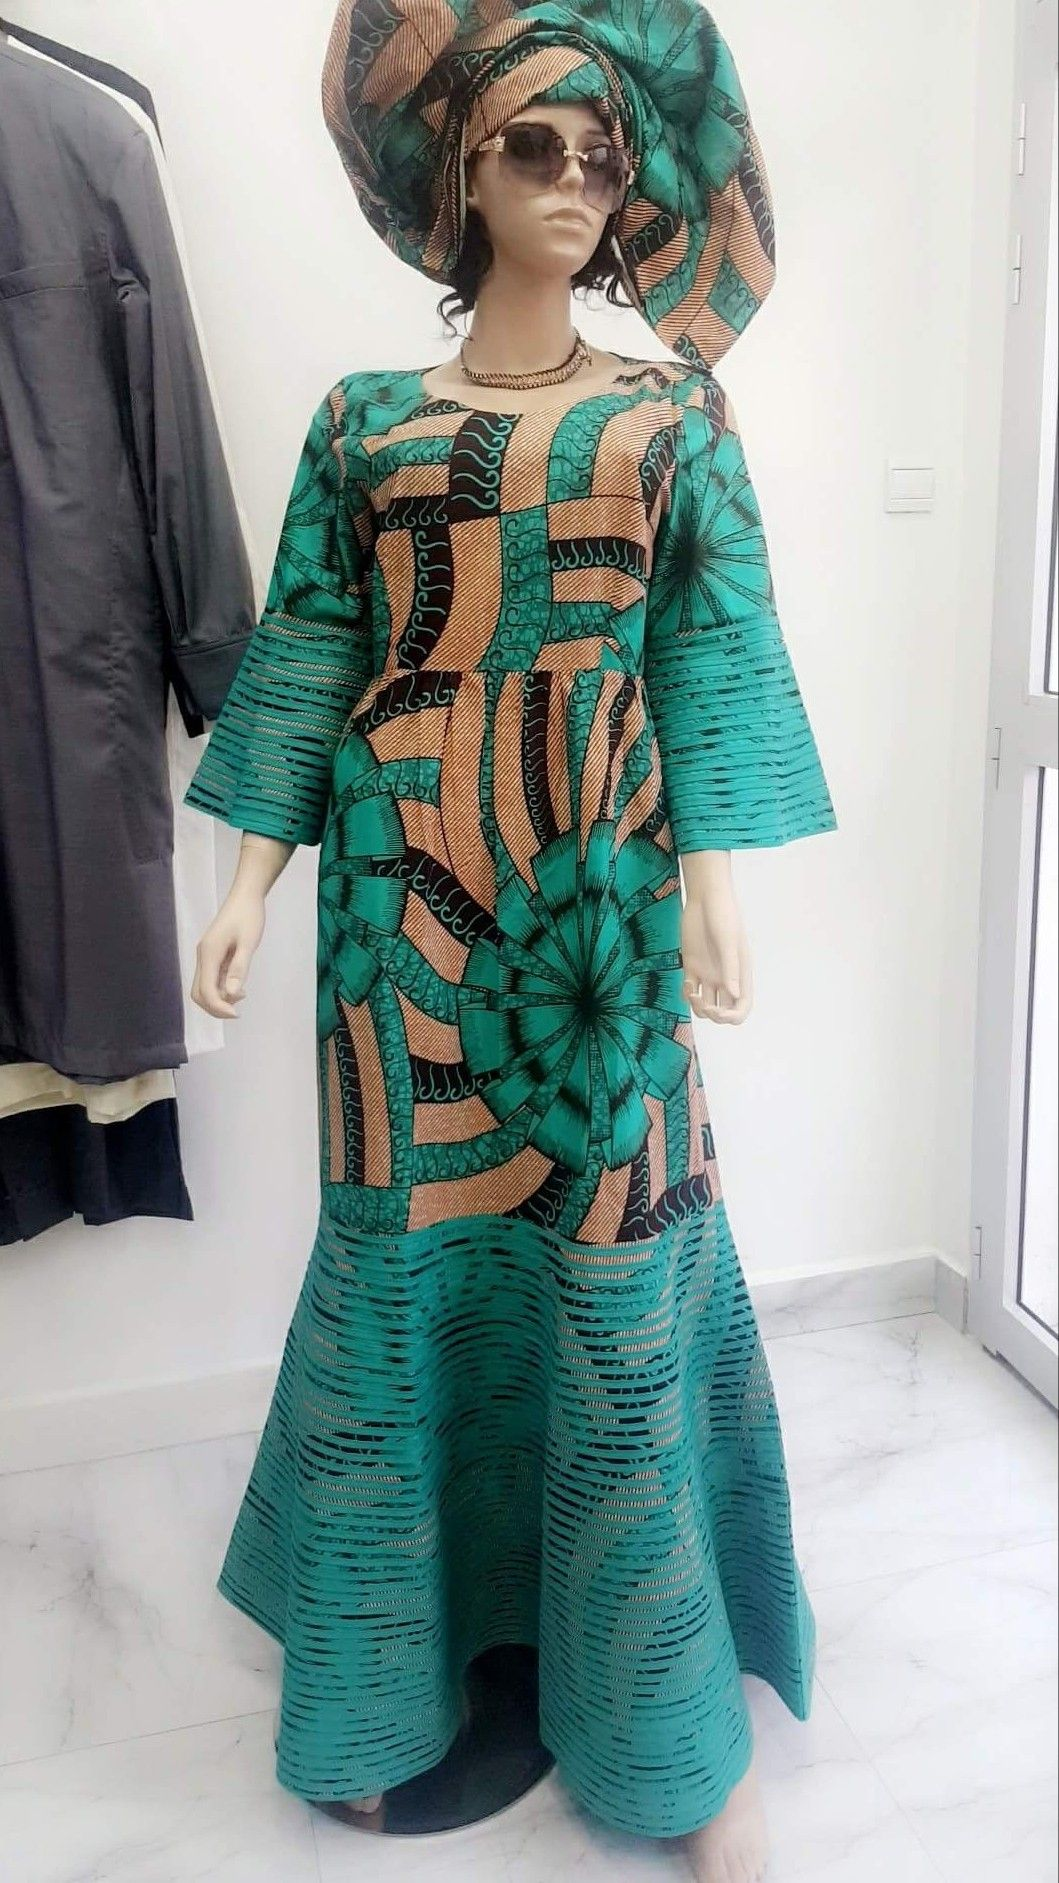 1000 Images About African Print 2 Piece Outfit On: African Women Two Piece O-neck Print Skirt Set African